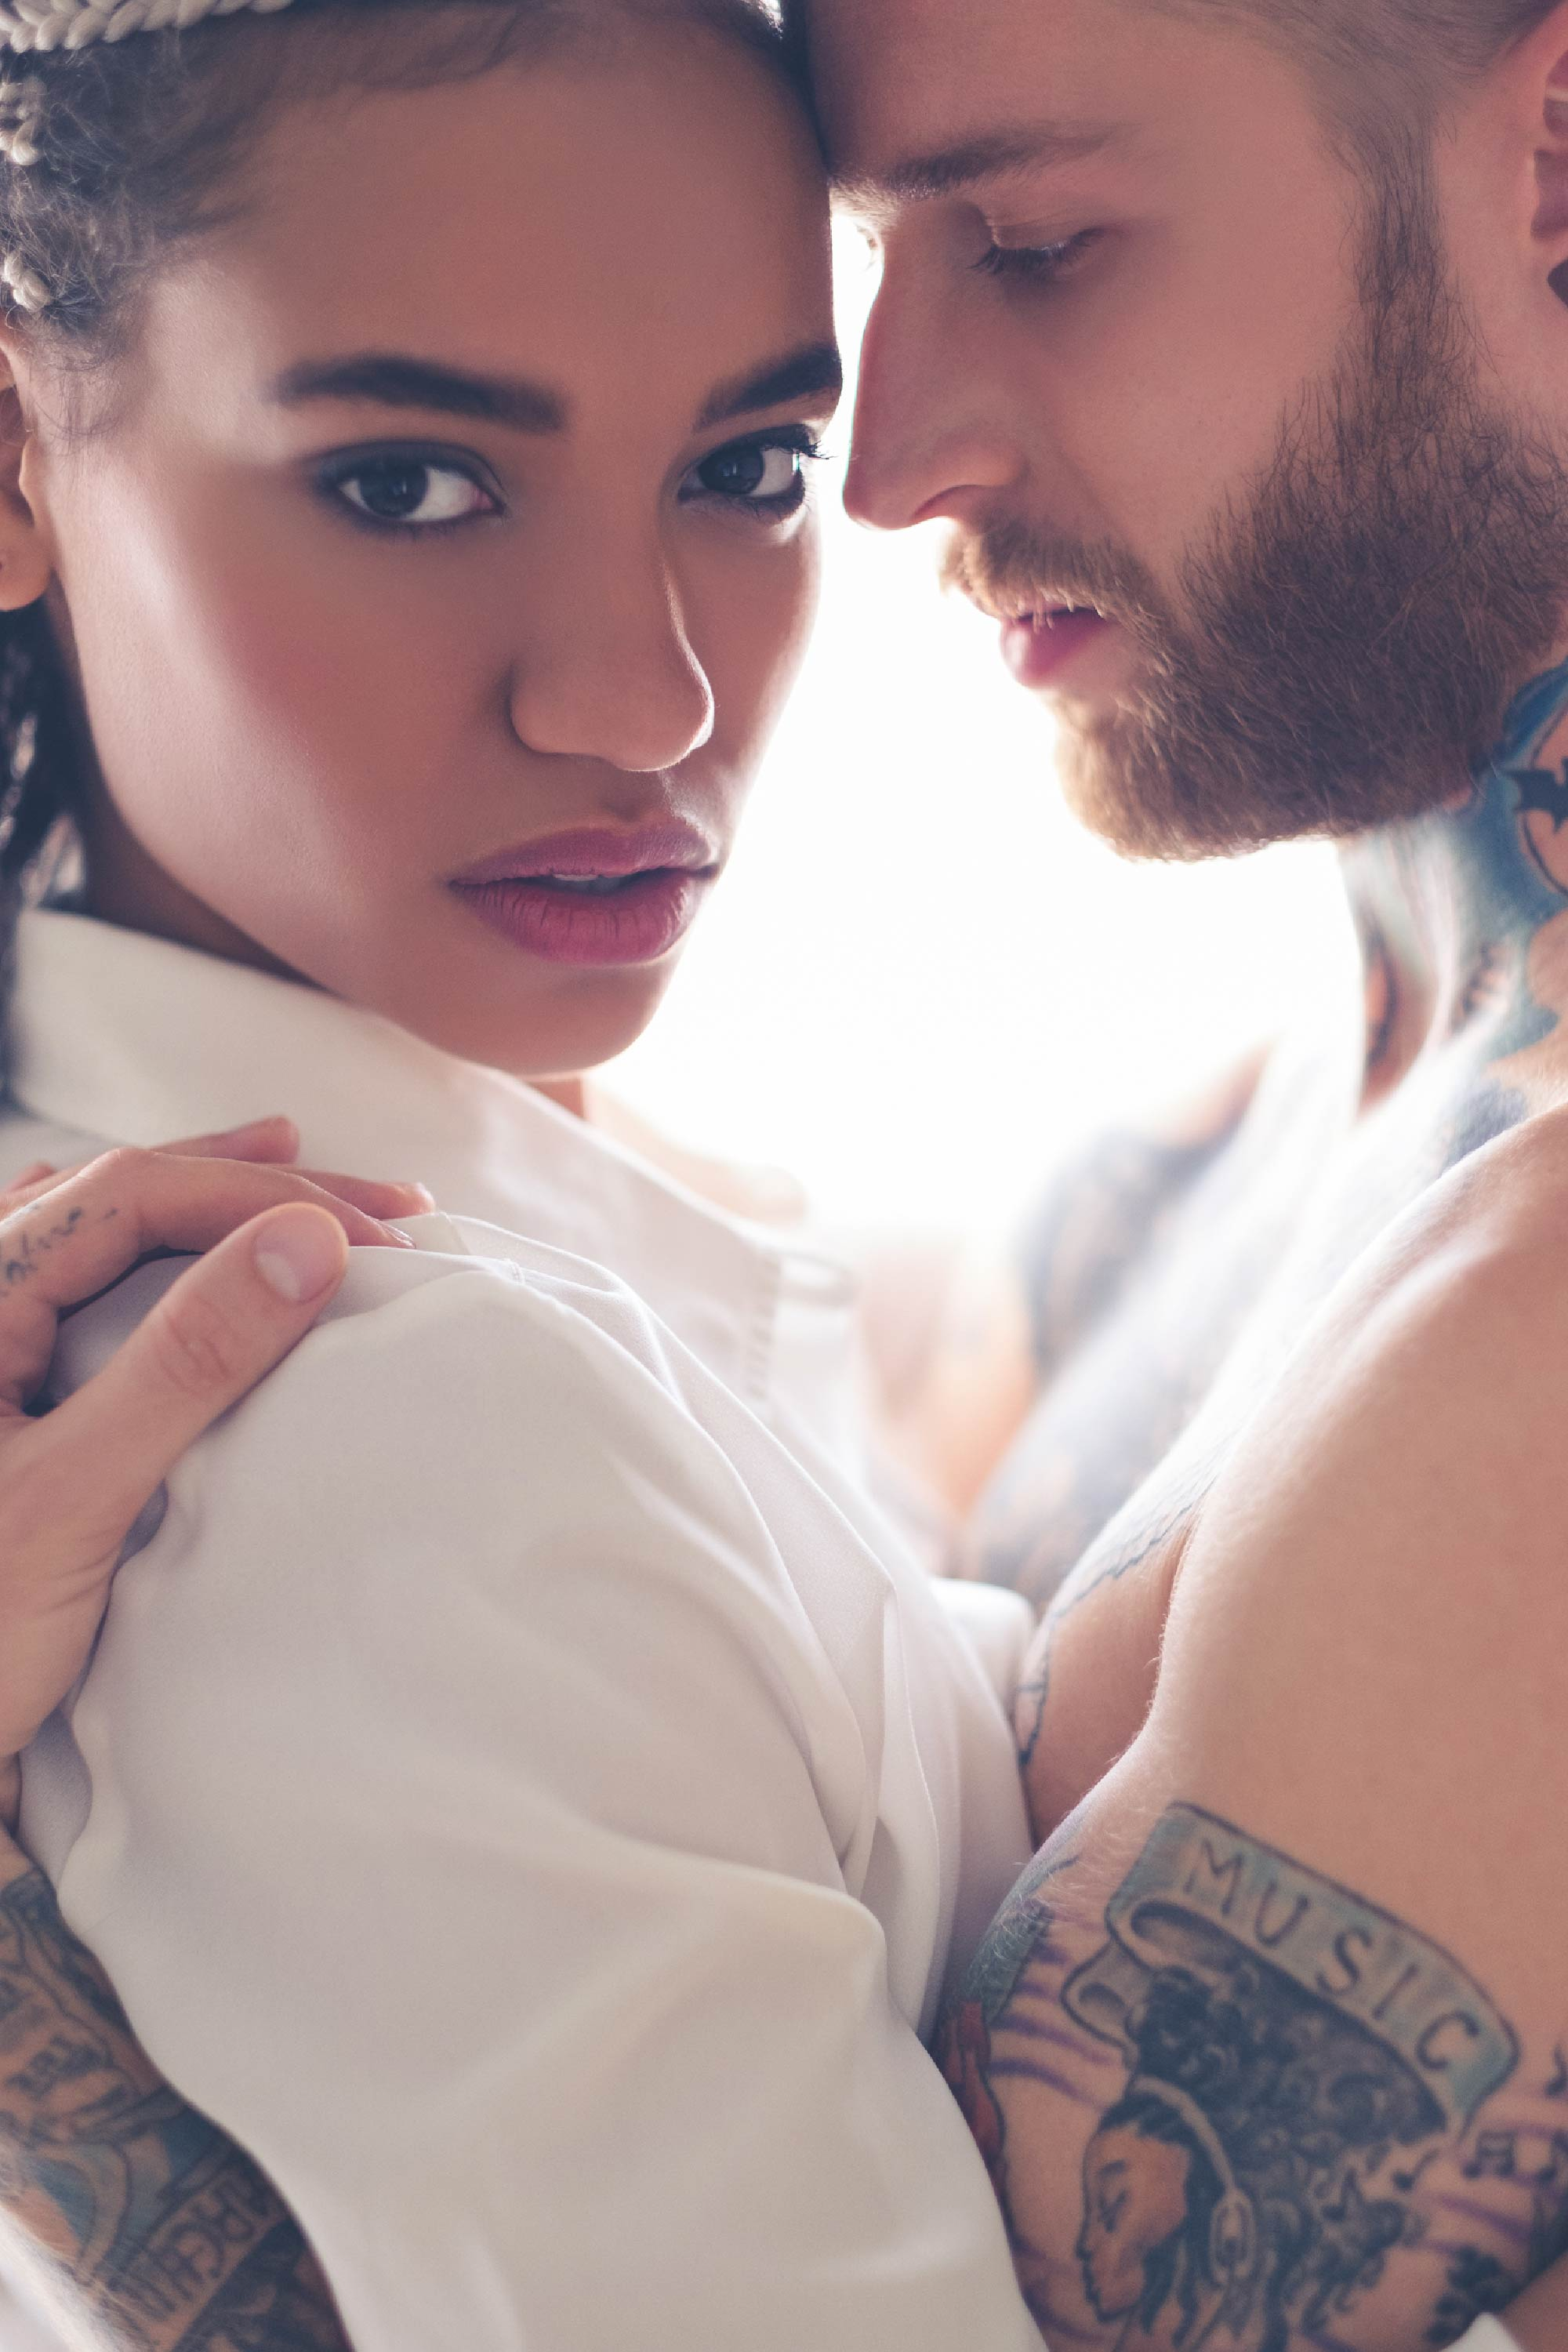 Makeup for London photoshoot. Tattooed man poses seductively with woman.